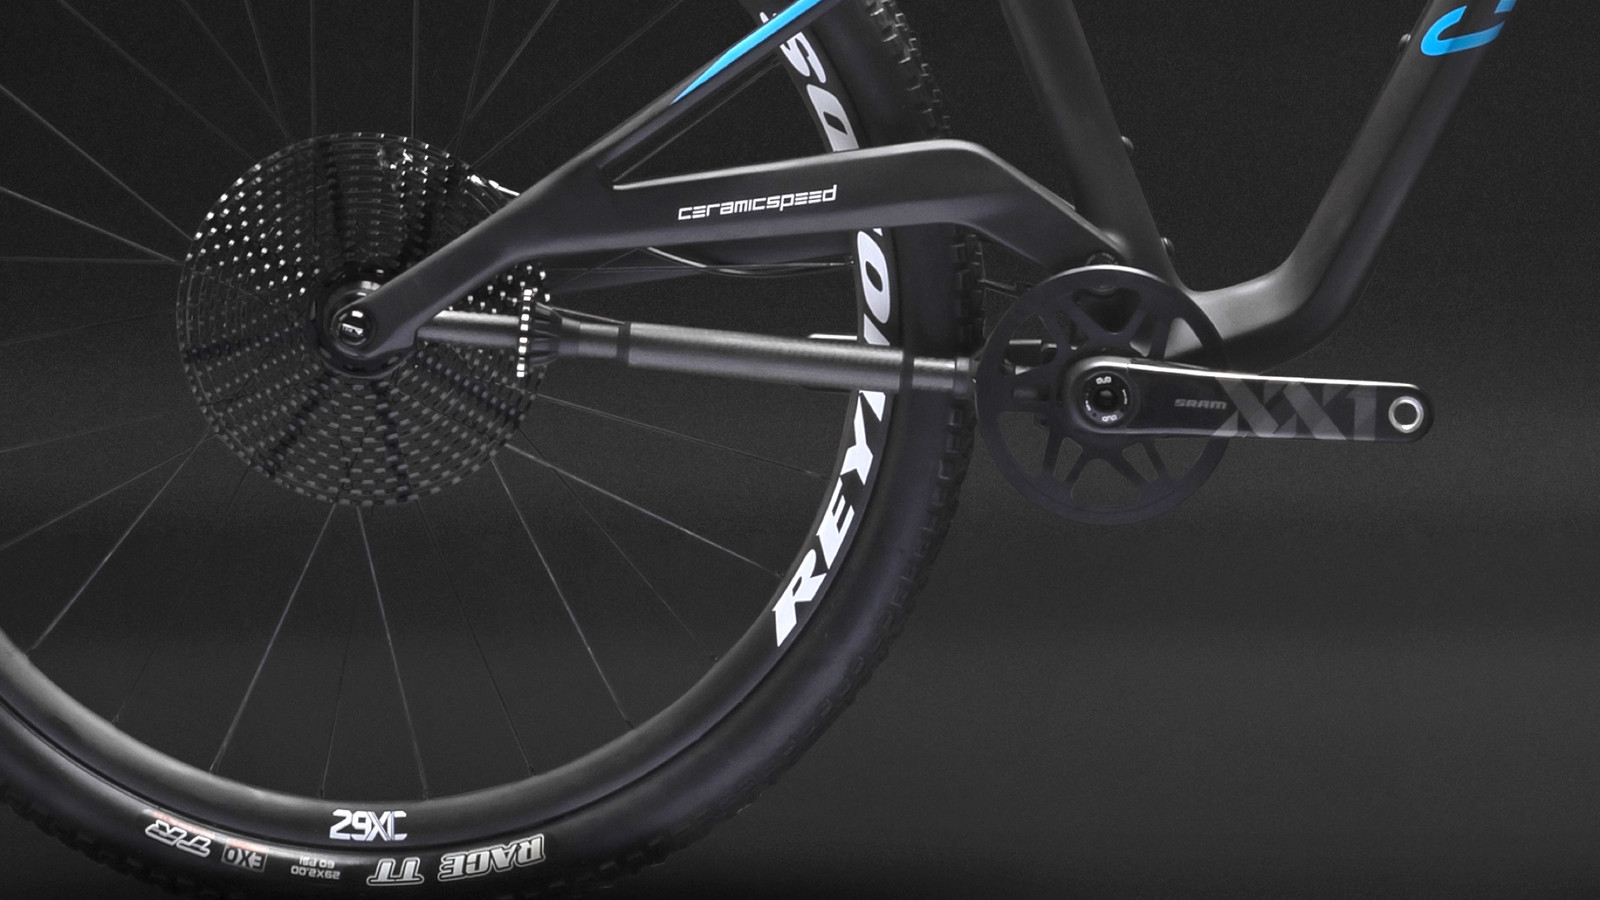 Is This the Future of Bicycle Drivetrains? CeramicSpeed's Driven Shifting System